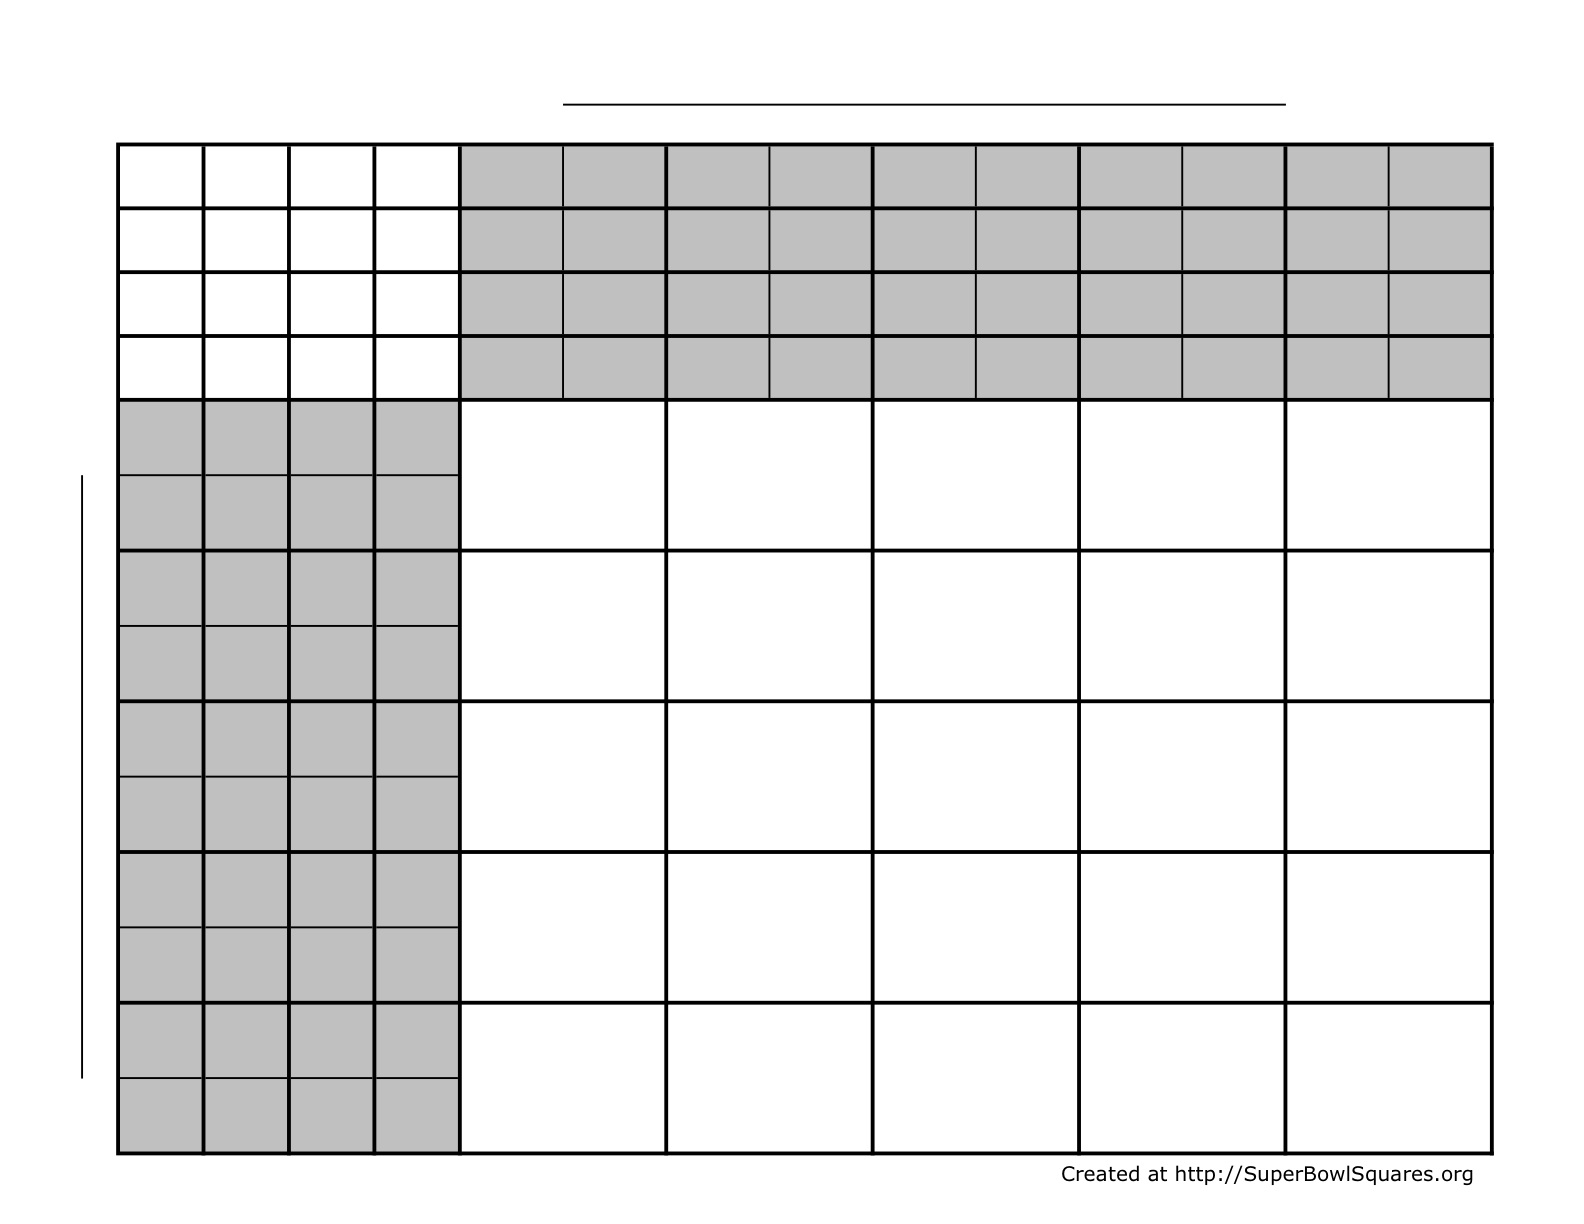 image about Printable Super Bowl Pools called Soccer Squares Tremendous Bowl Squares Enjoy Soccer